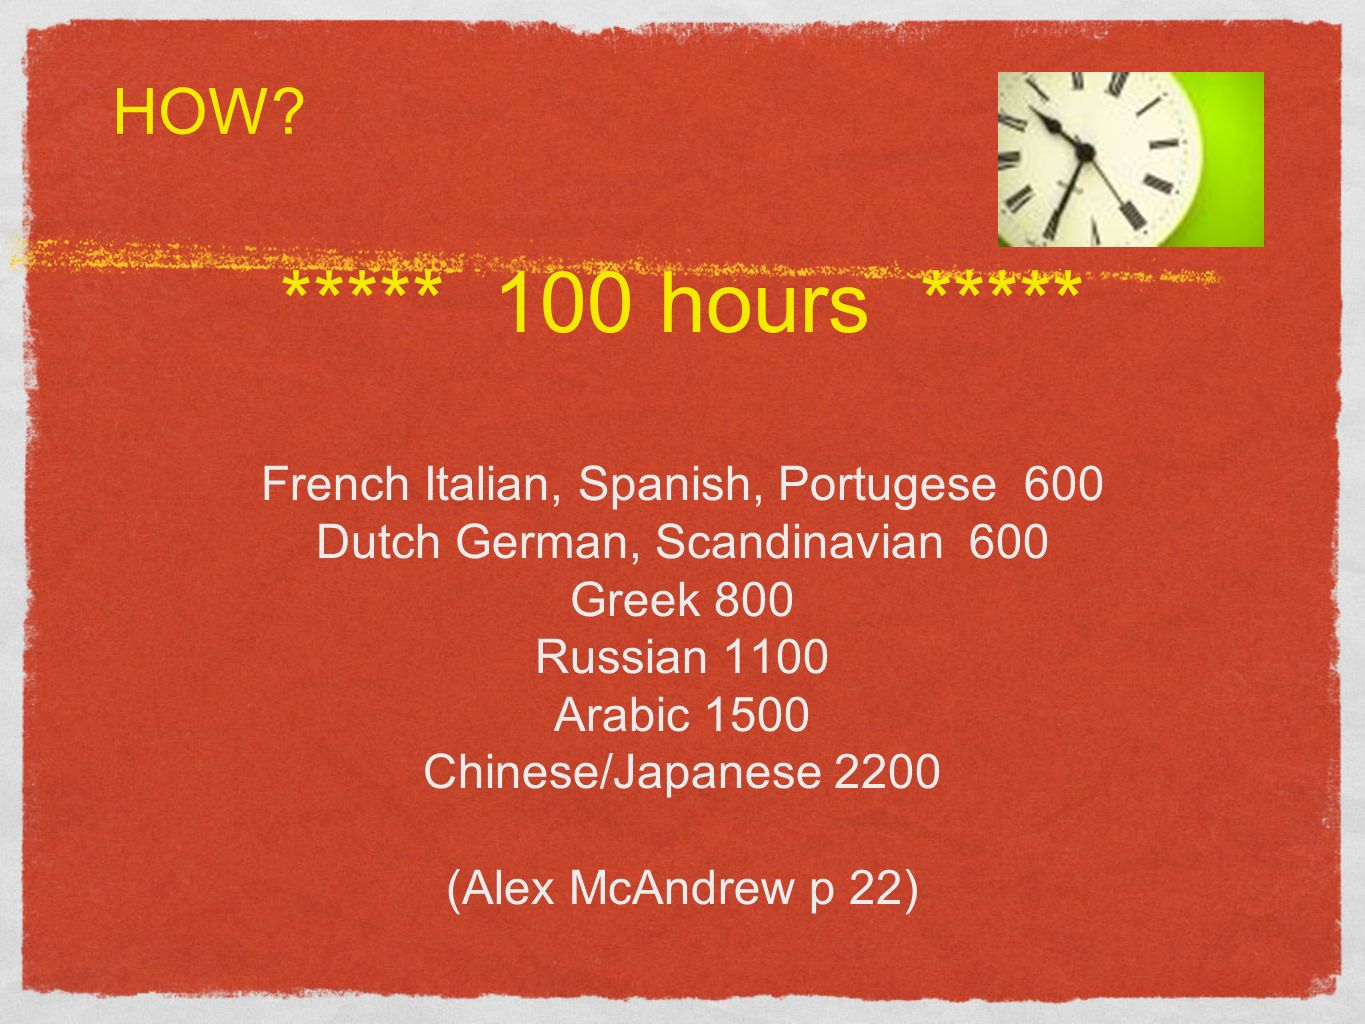 ***** 100 hours ***** French Italian, Spanish, Portugese 600 Dutch German, Scandinavian 600 Greek 800 Russian 1100 Arabic 1500 Chinese/Japanese 2200 (Alex McAndrew p 22) HOW